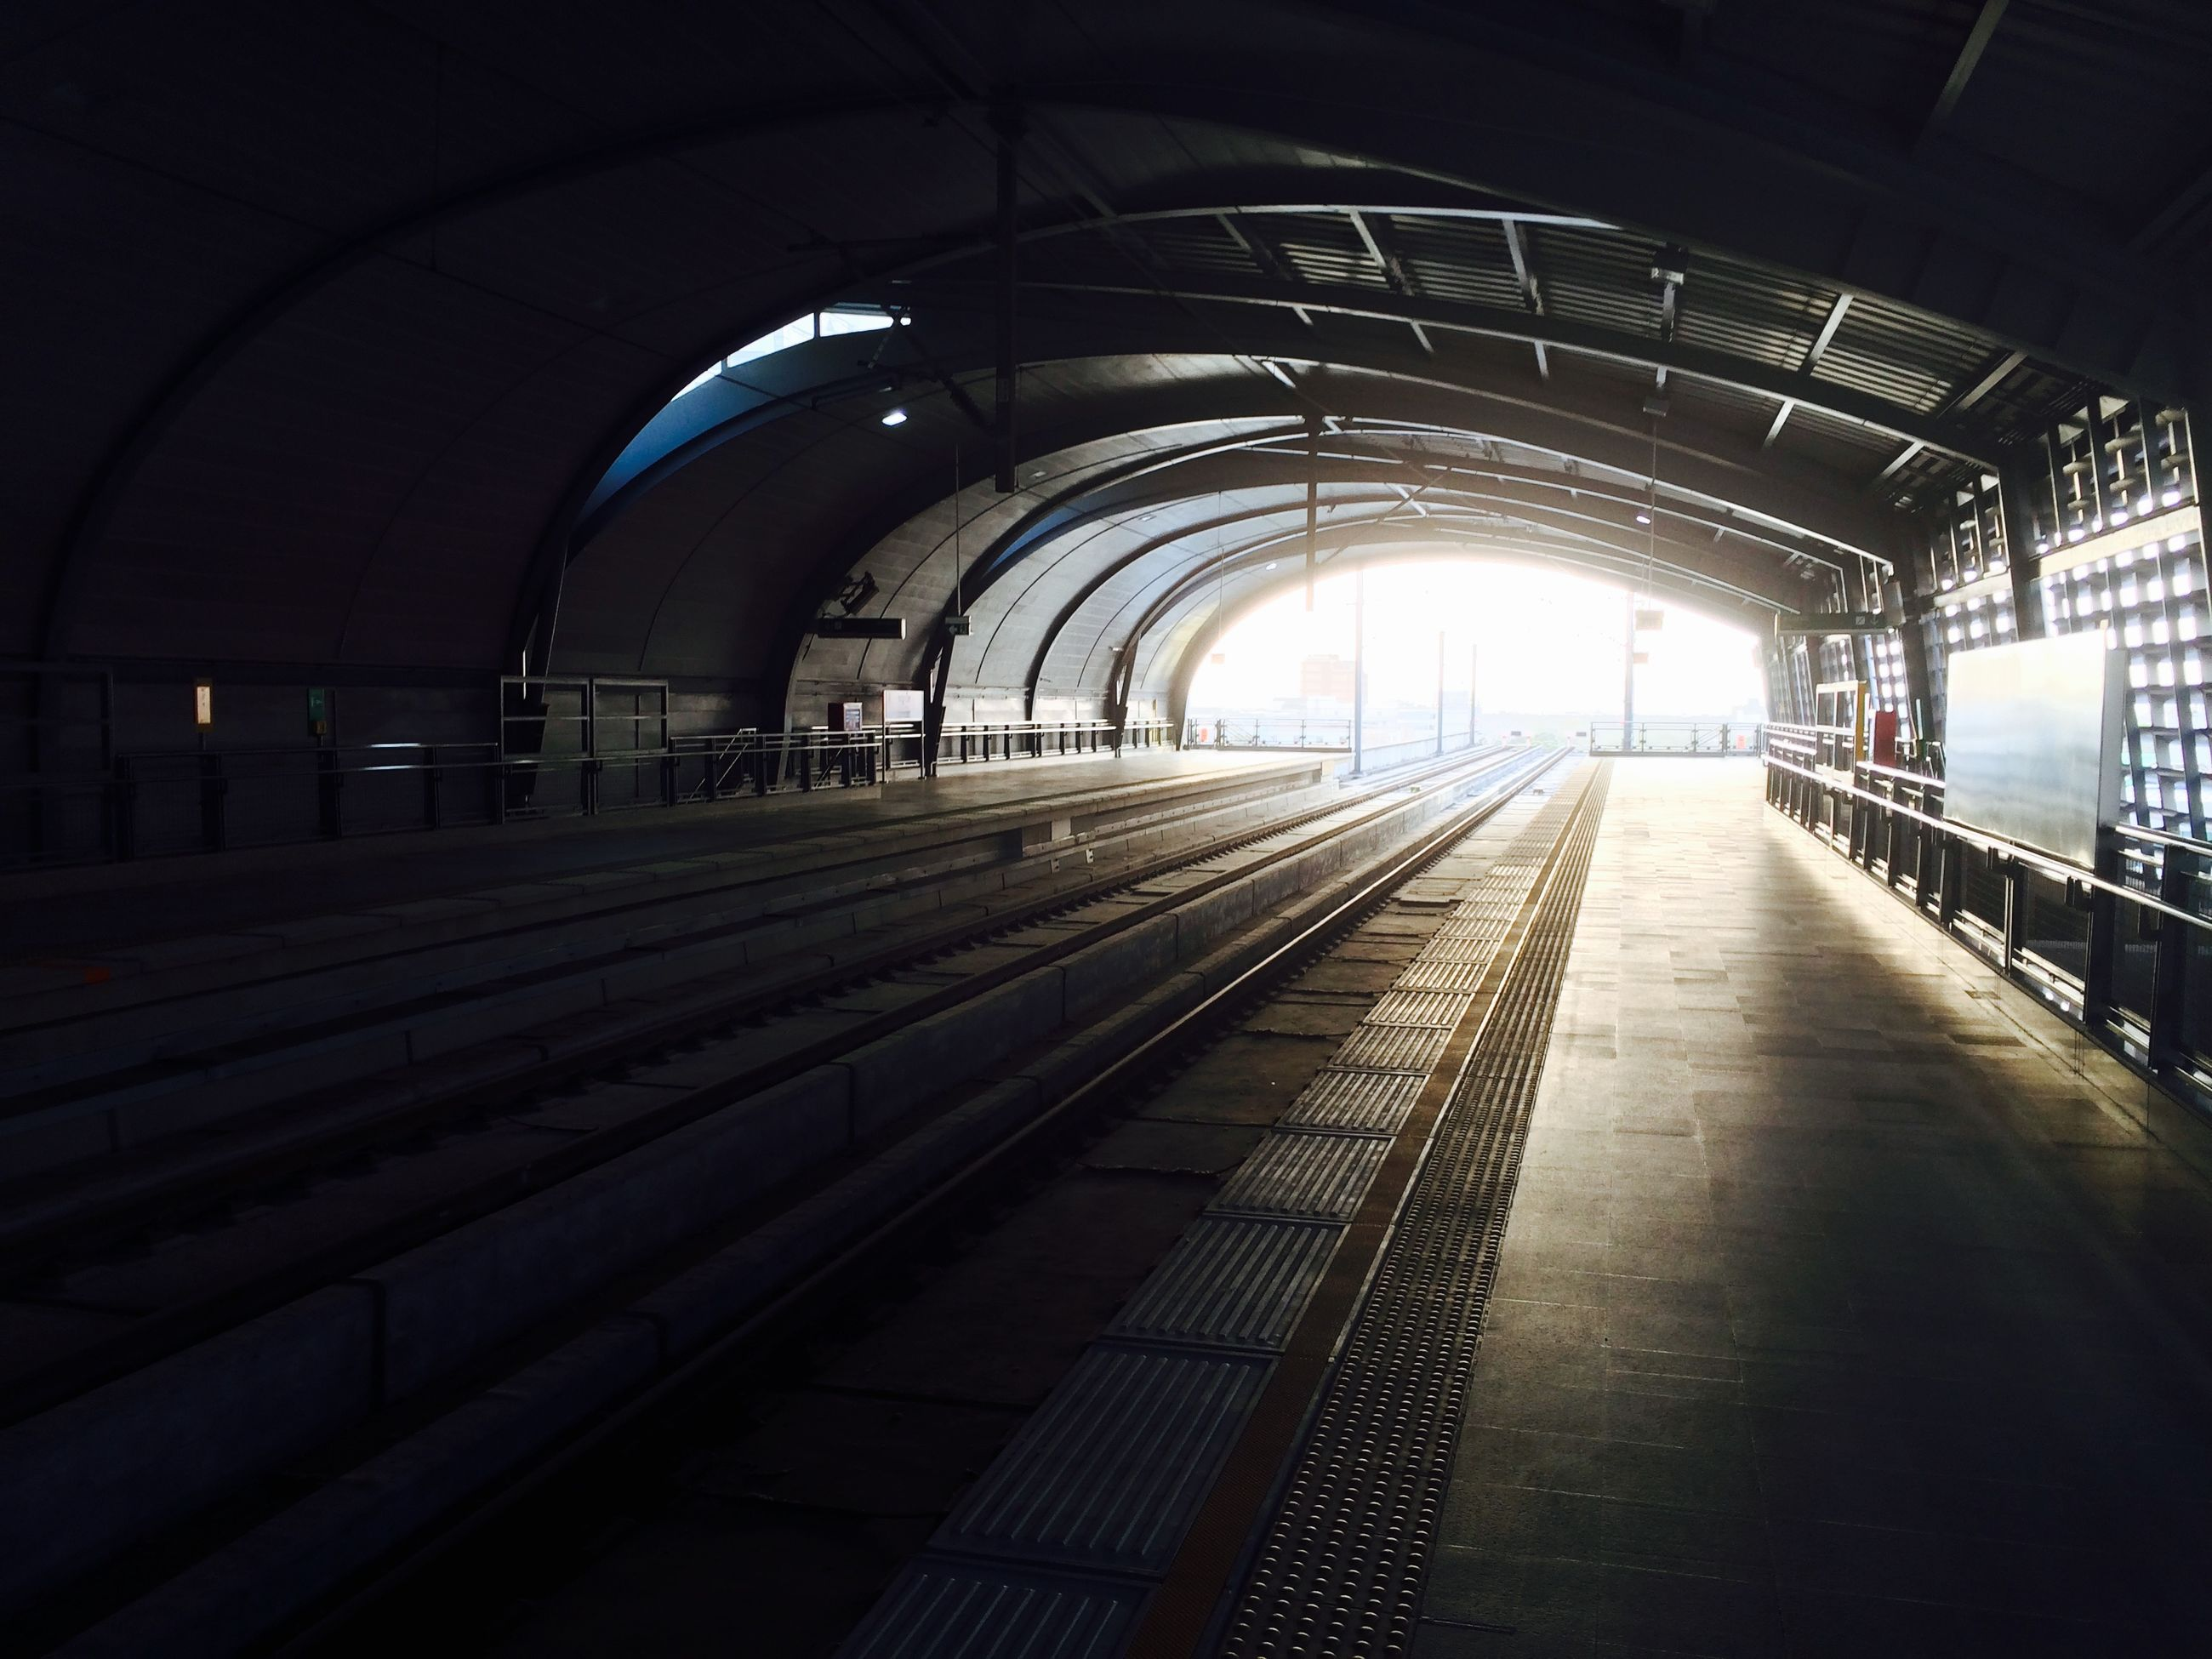 indoors, transportation, railroad station, the way forward, railroad track, rail transportation, public transportation, railroad station platform, diminishing perspective, ceiling, architecture, built structure, illuminated, vanishing point, empty, incidental people, arch, subway, subway station, interior